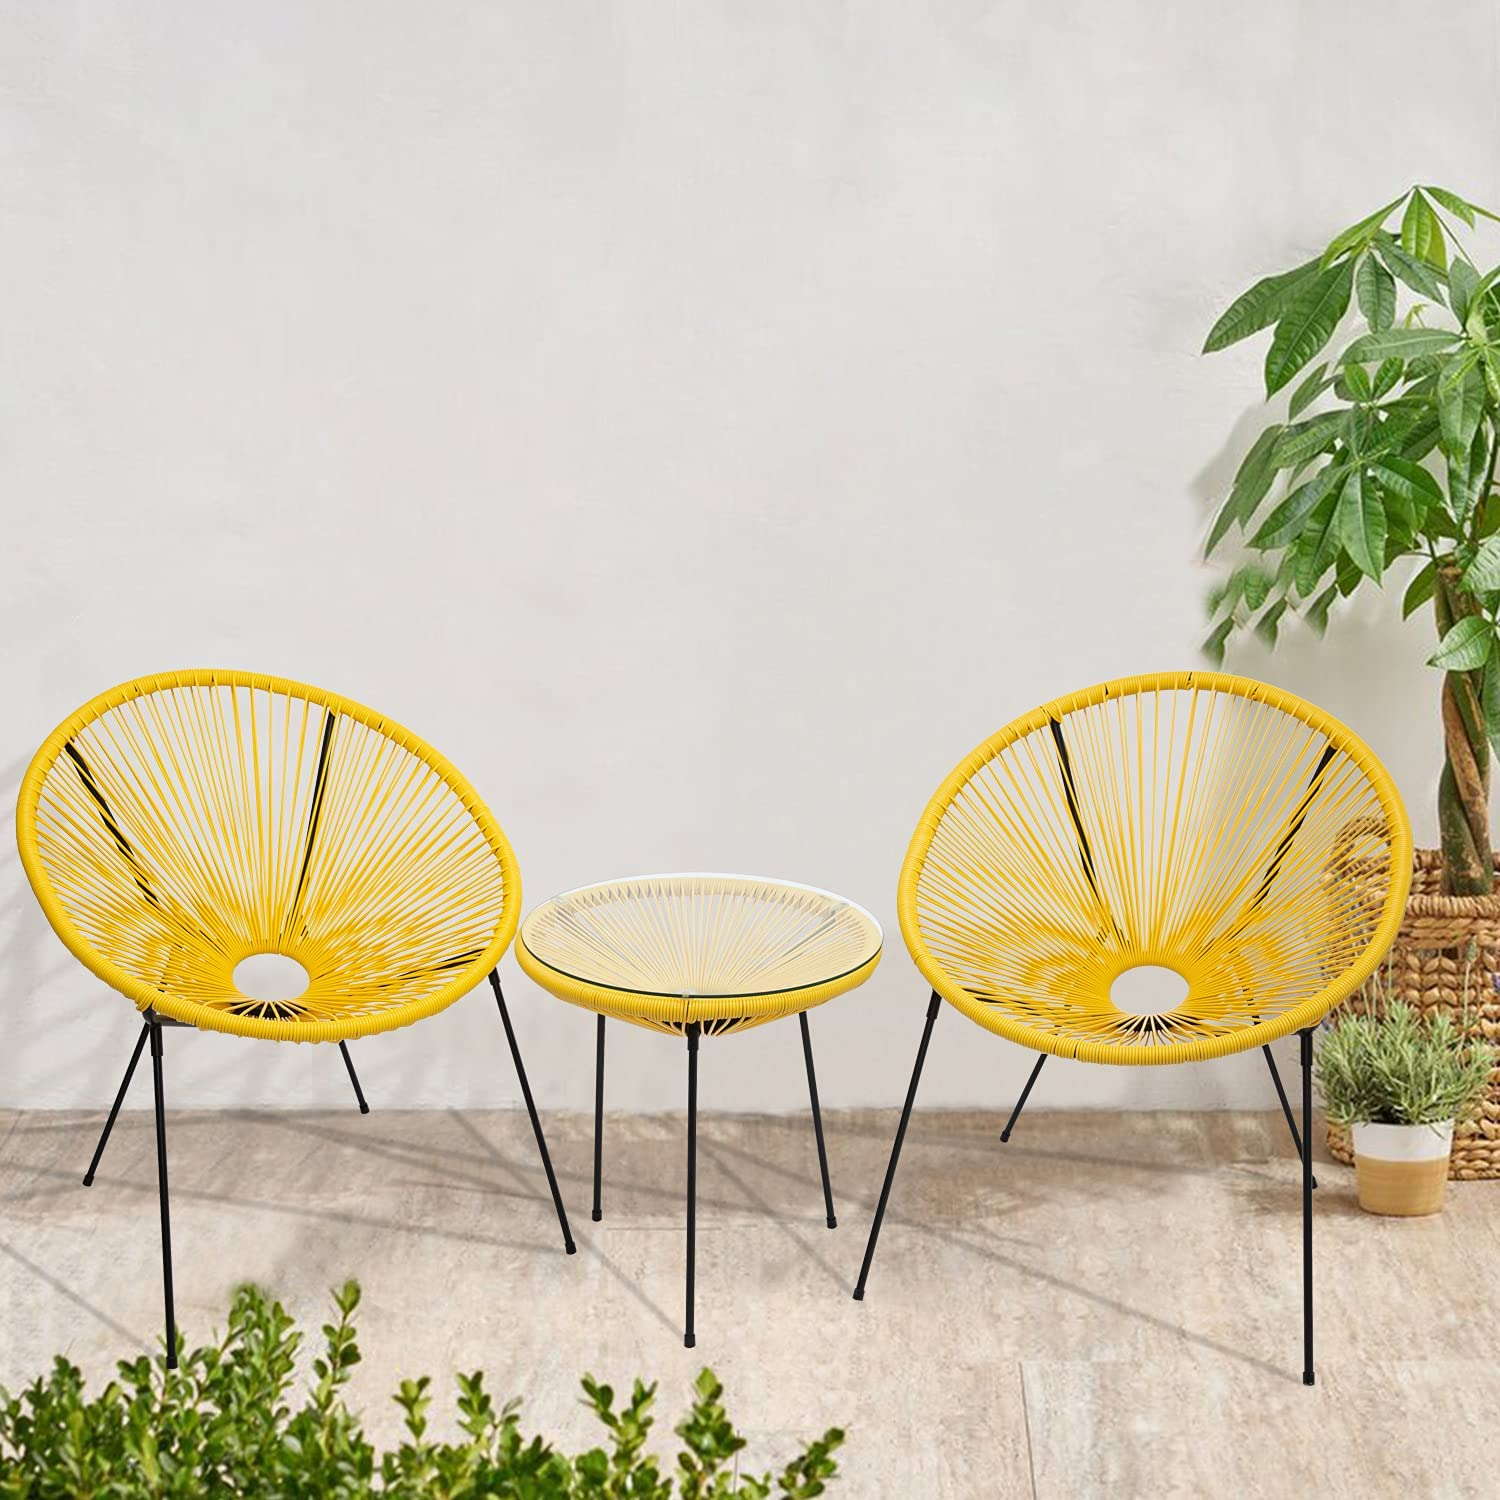 3-Piece Outdoor Acapulco Chair Set All-Weather quality assurance Max 72% OFF Plastic P Rope w